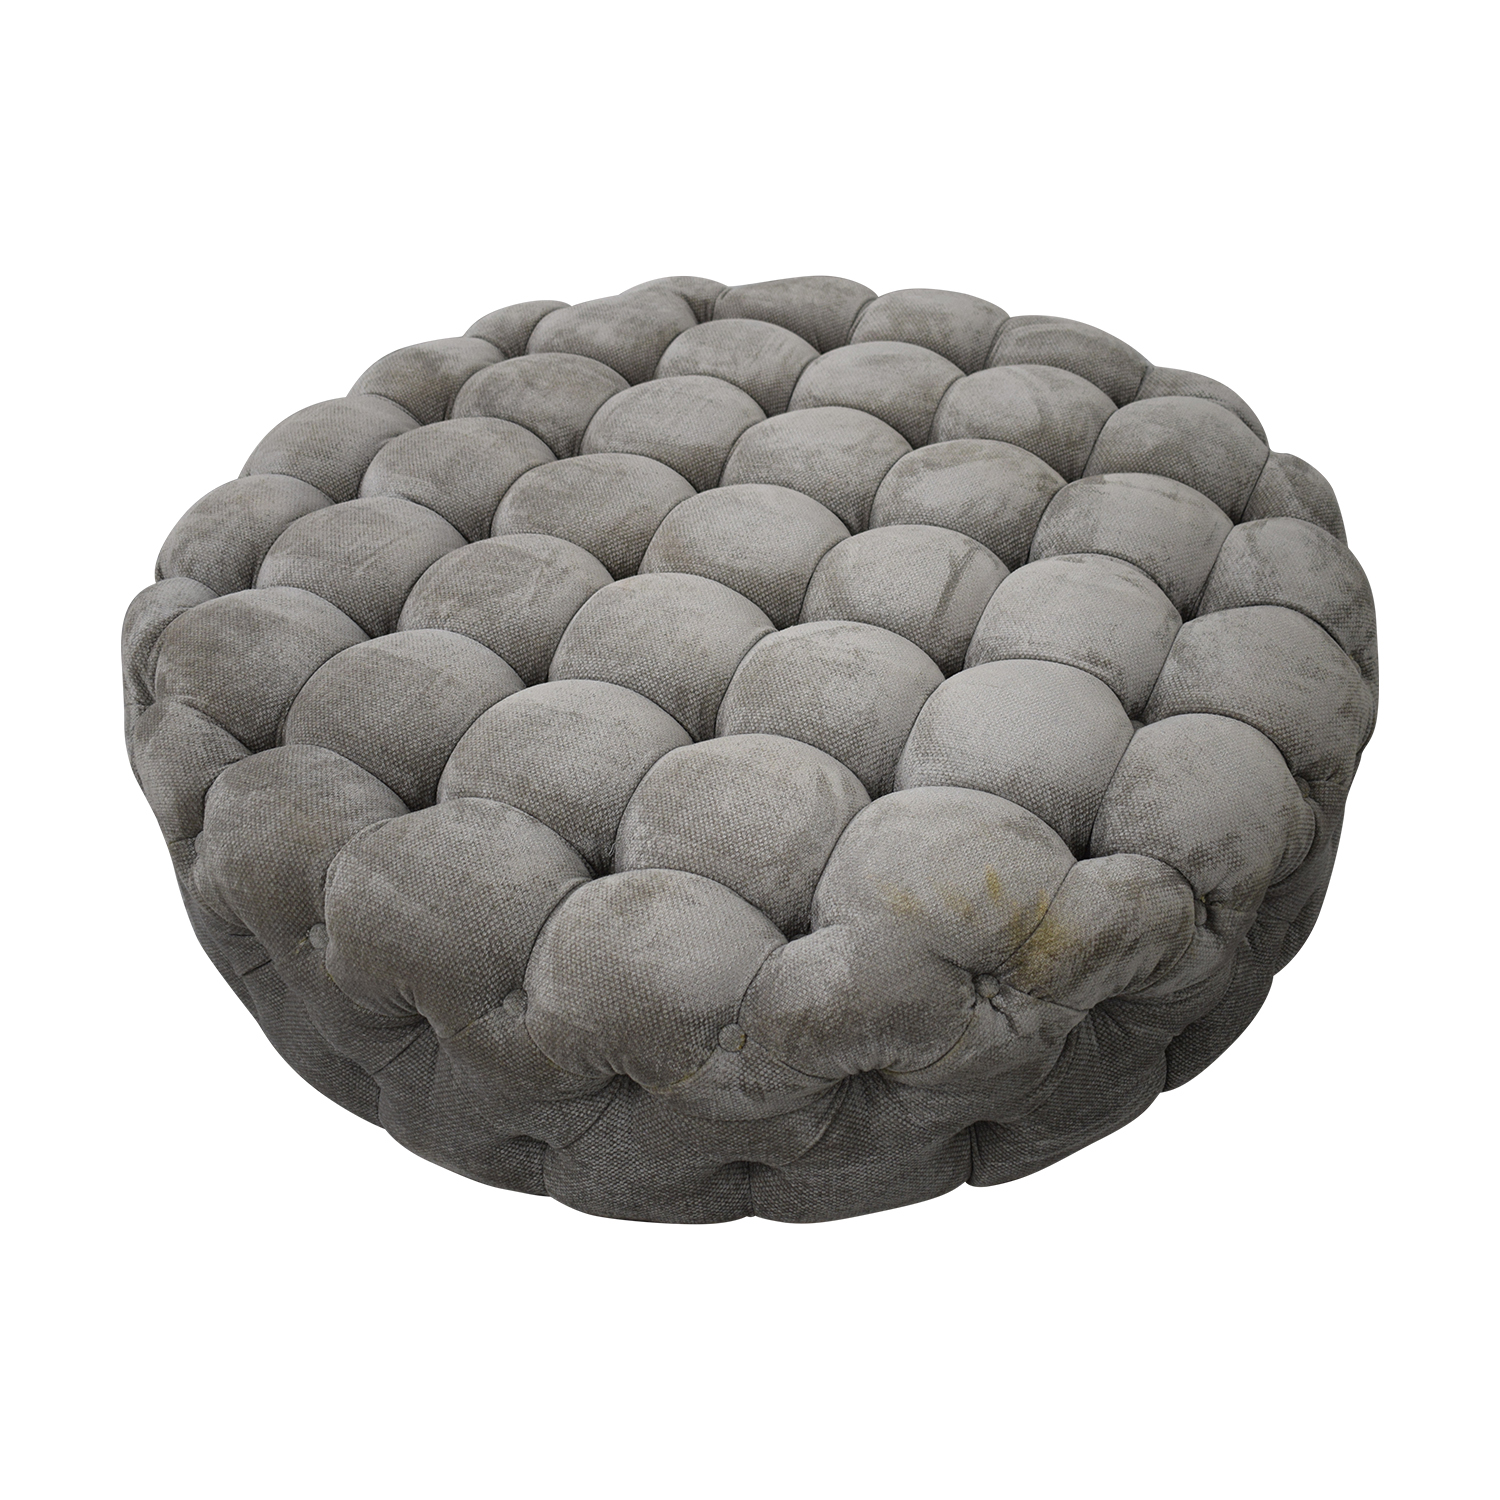 Round Tufted Ottoman or Coffee Table nj